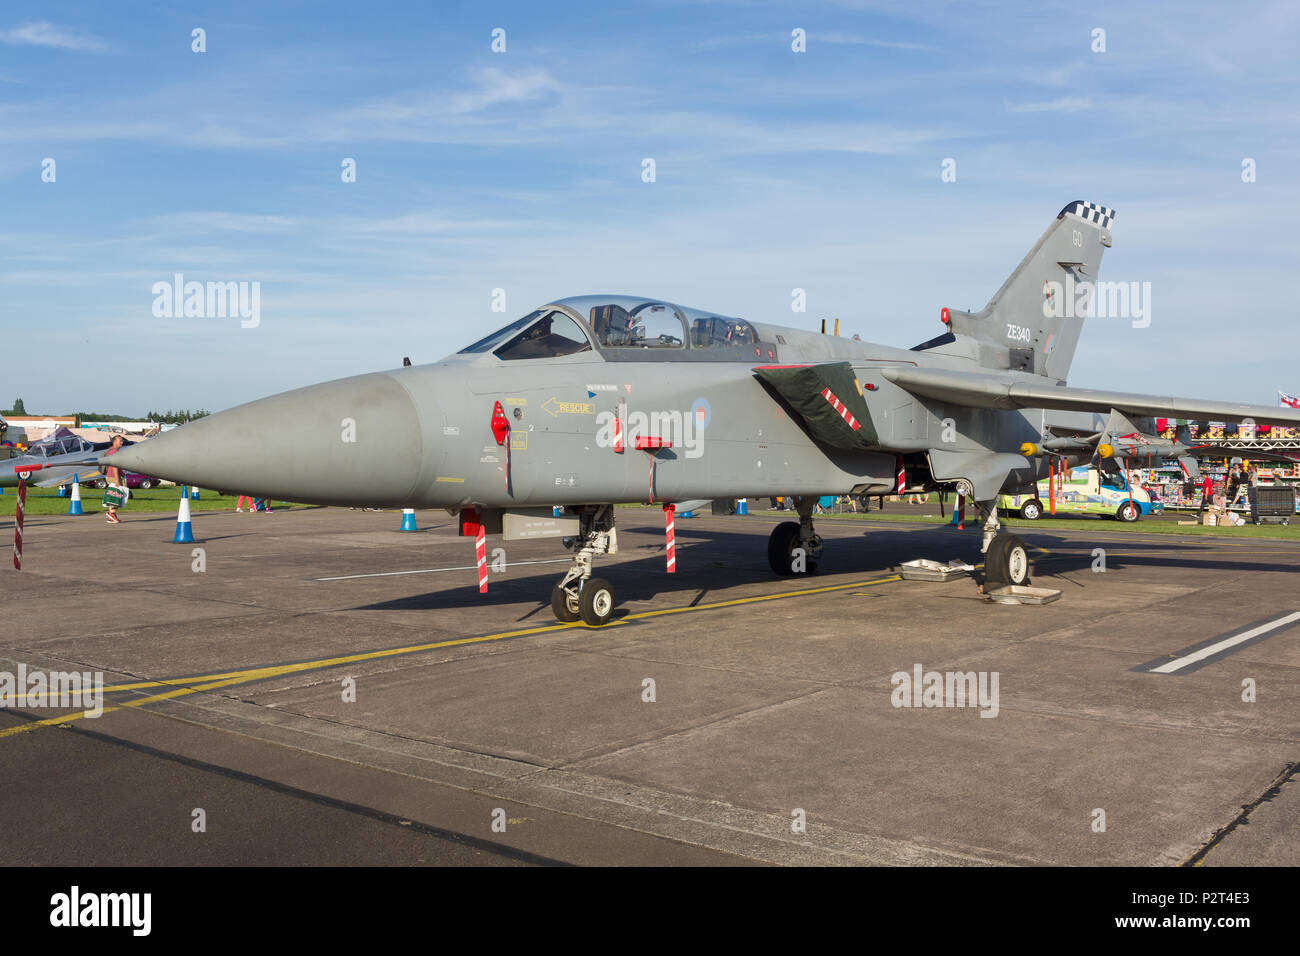 Panavia Tornado F3 of the Royal Air Force. A multi role combat aircraft introduced in the 1970s - Stock Image